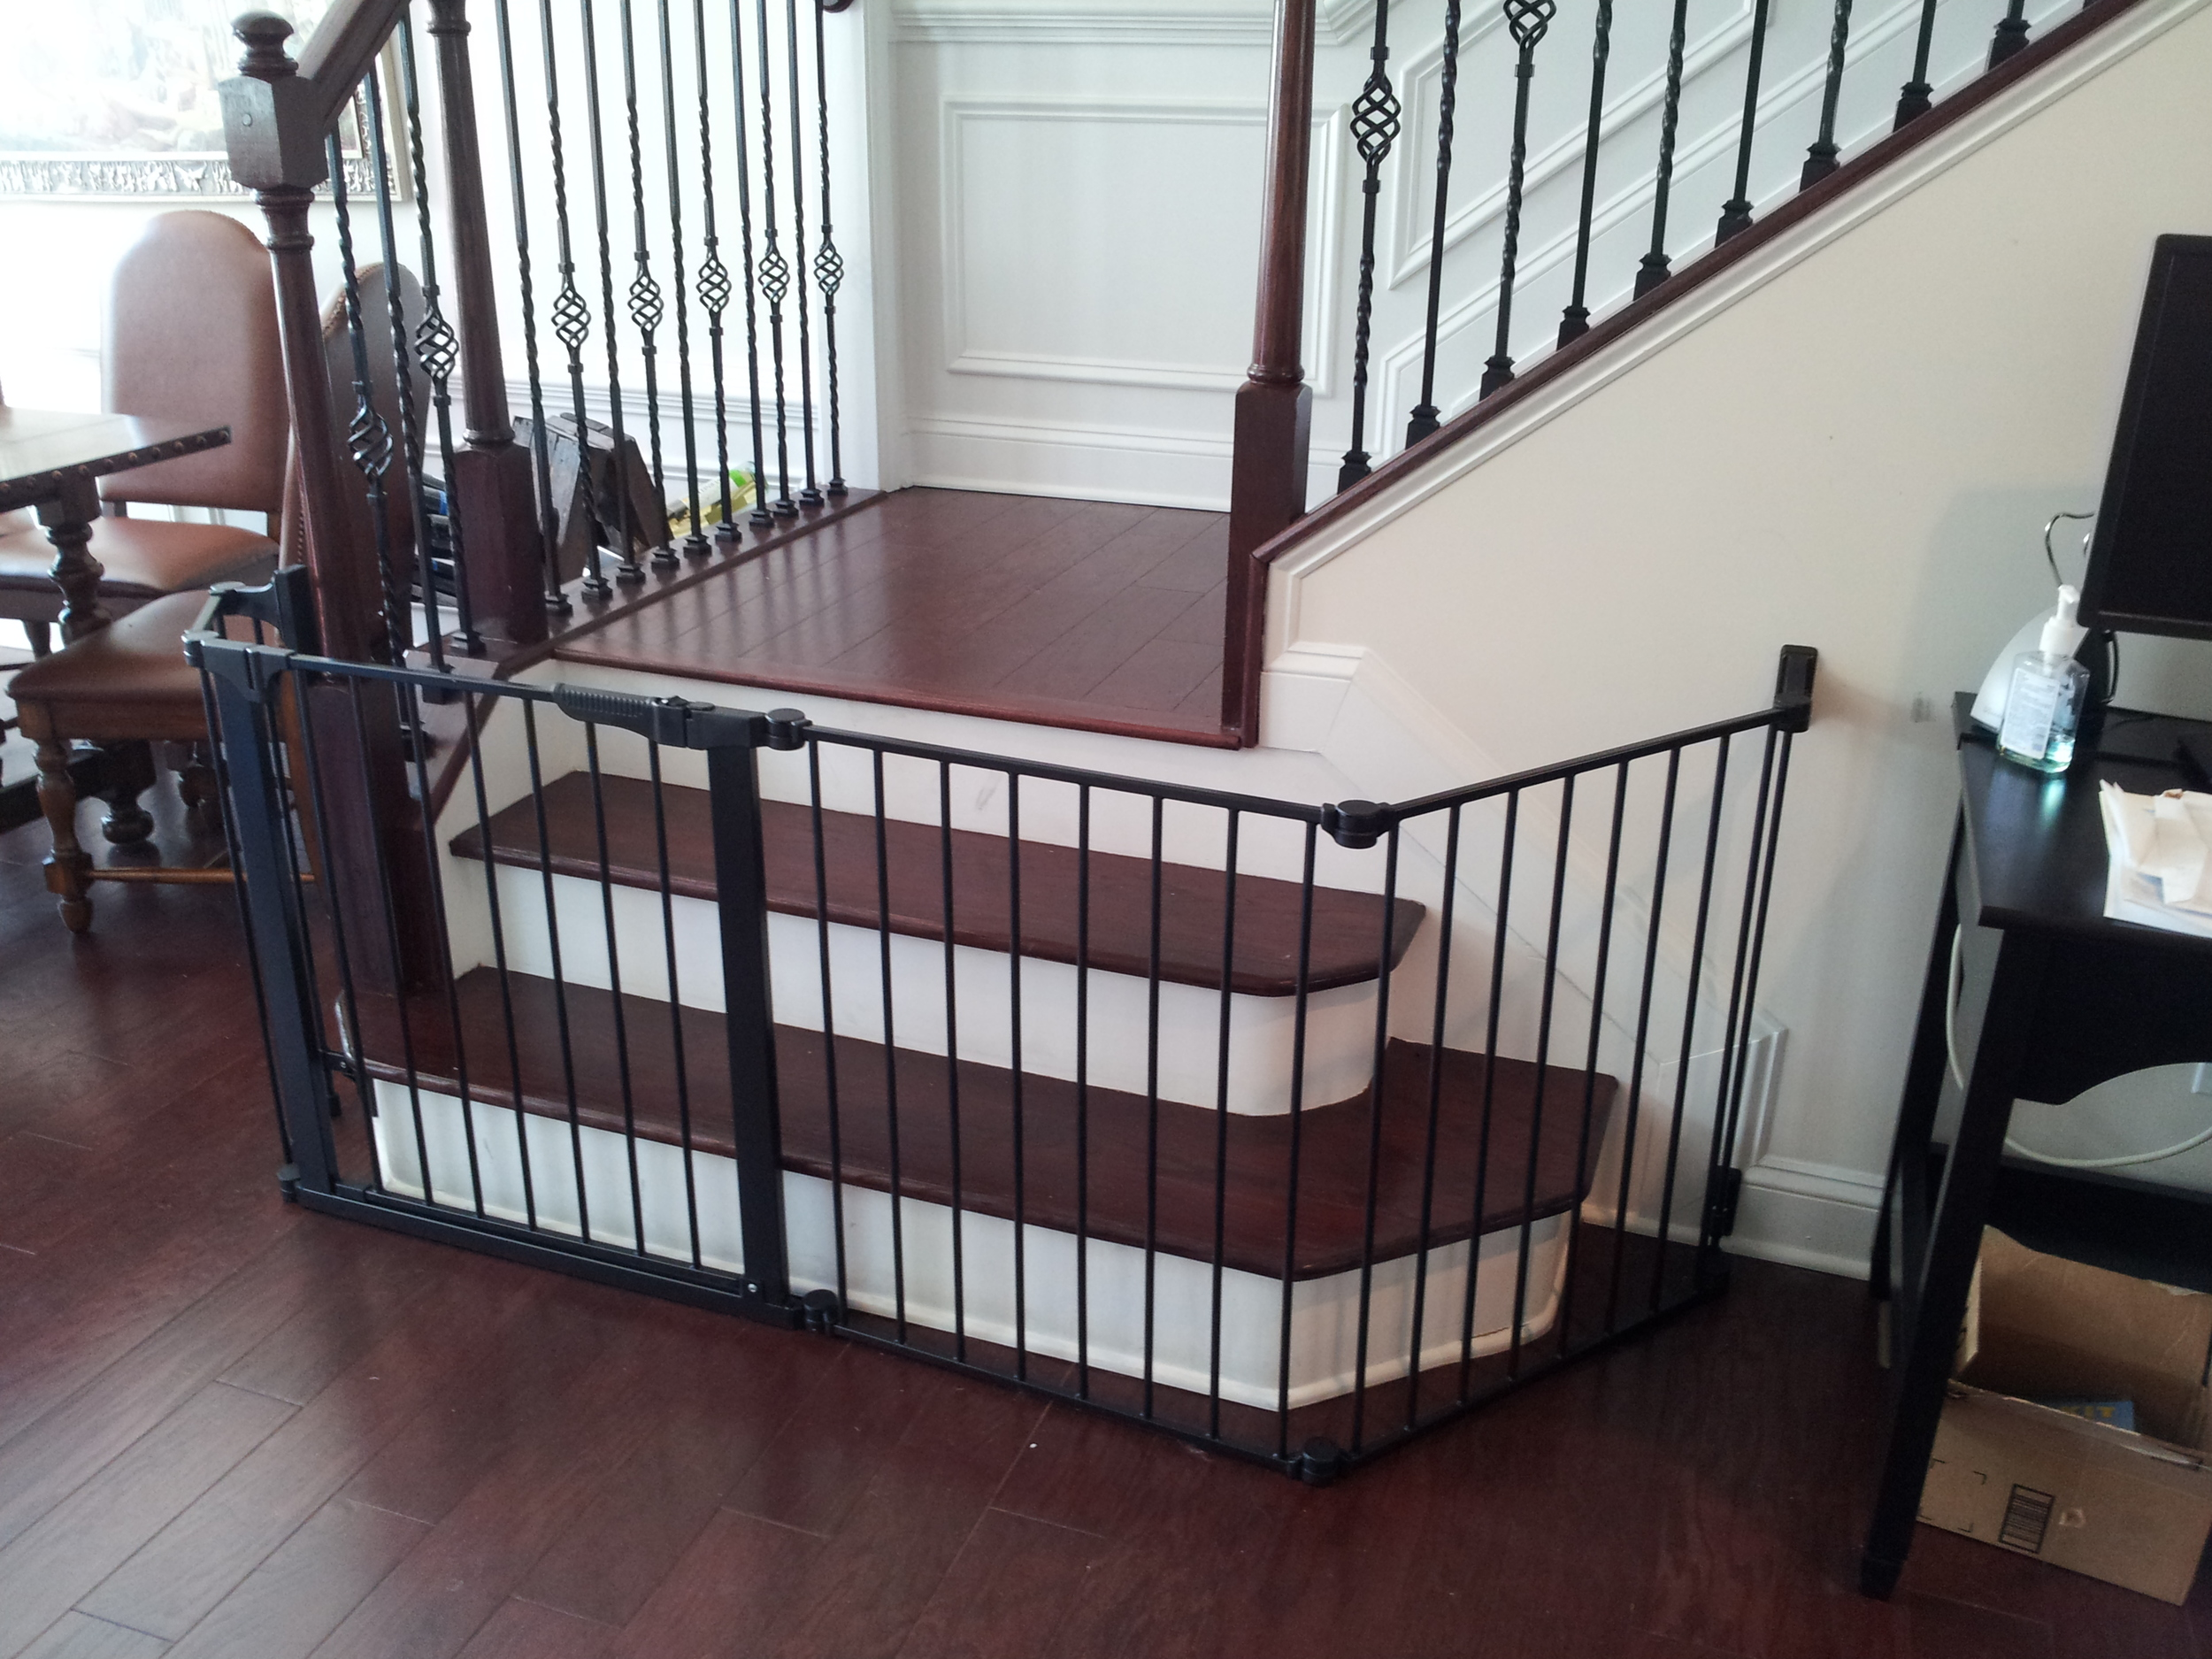 Custom fit gates can be used for odd shaped areas such as stairs with a bullnose step at the bottom